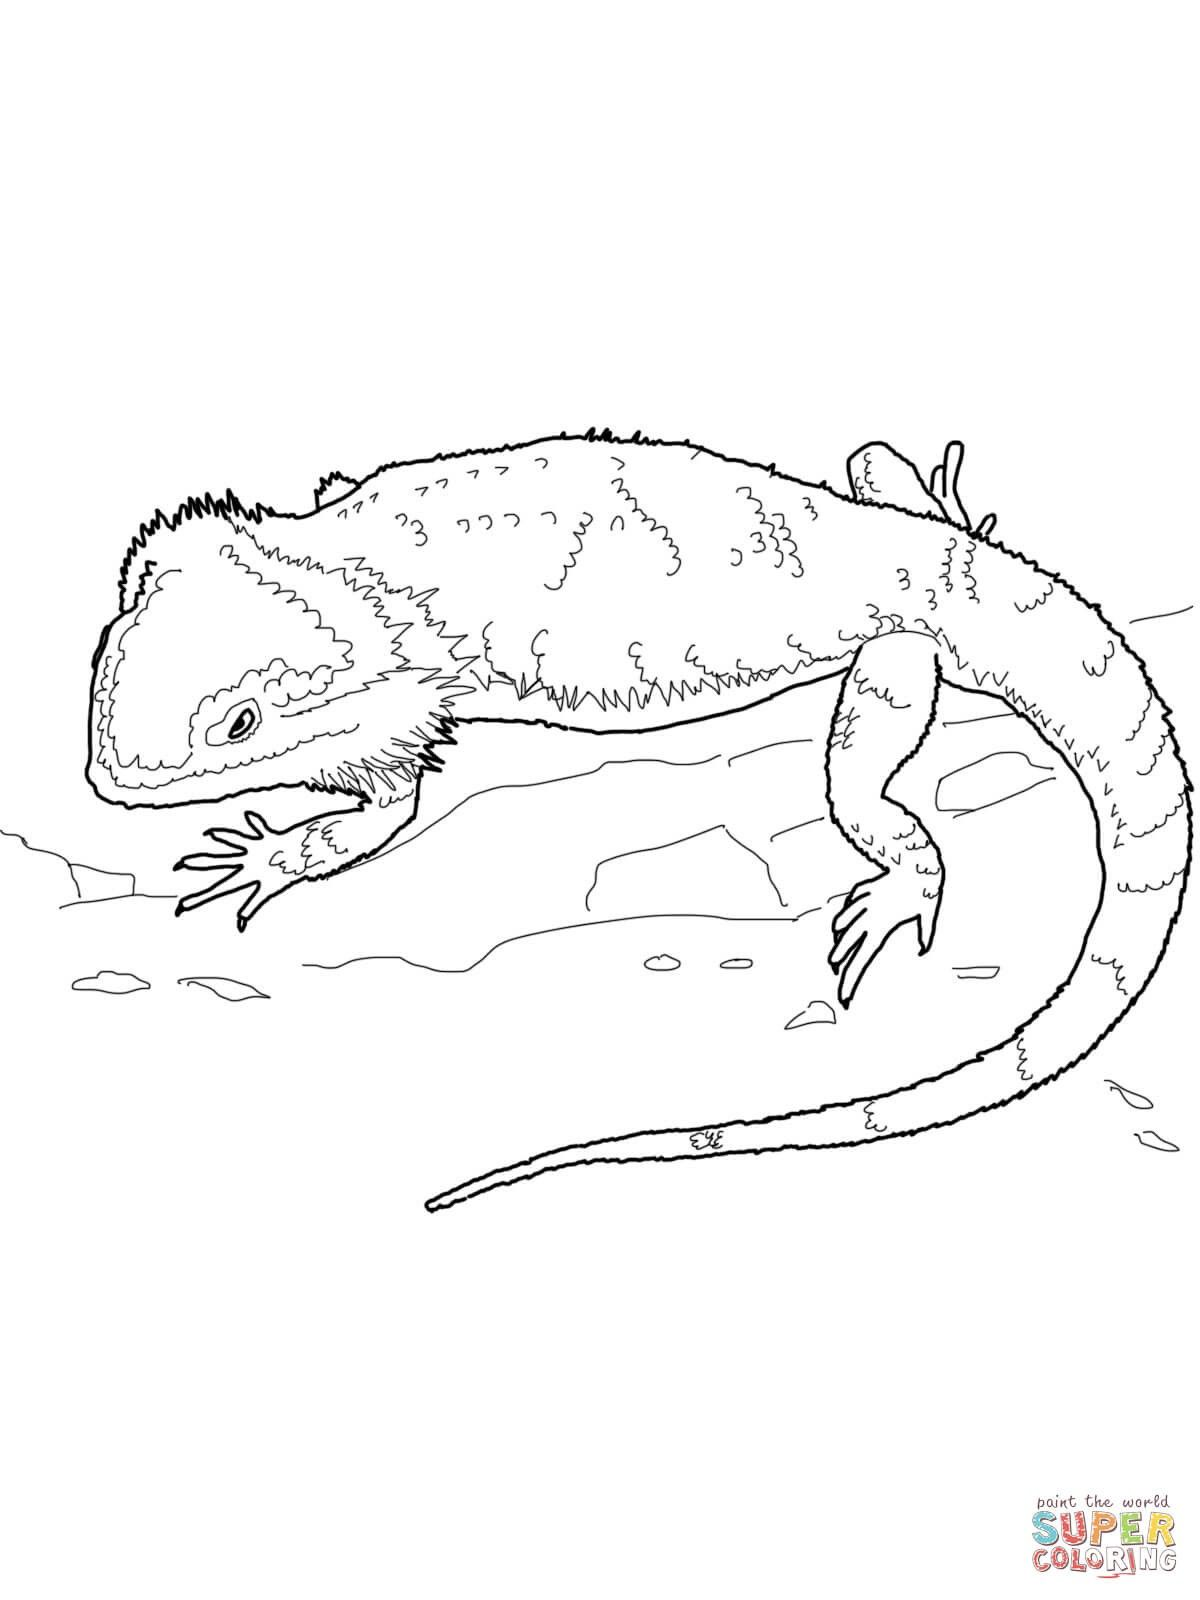 Bearded Dragon Coloring Page Through The Thousand Photographs Online Concerning Bearded Drag Dragon Coloring Page Bearded Dragon Colors Bearded Dragon Tattoo